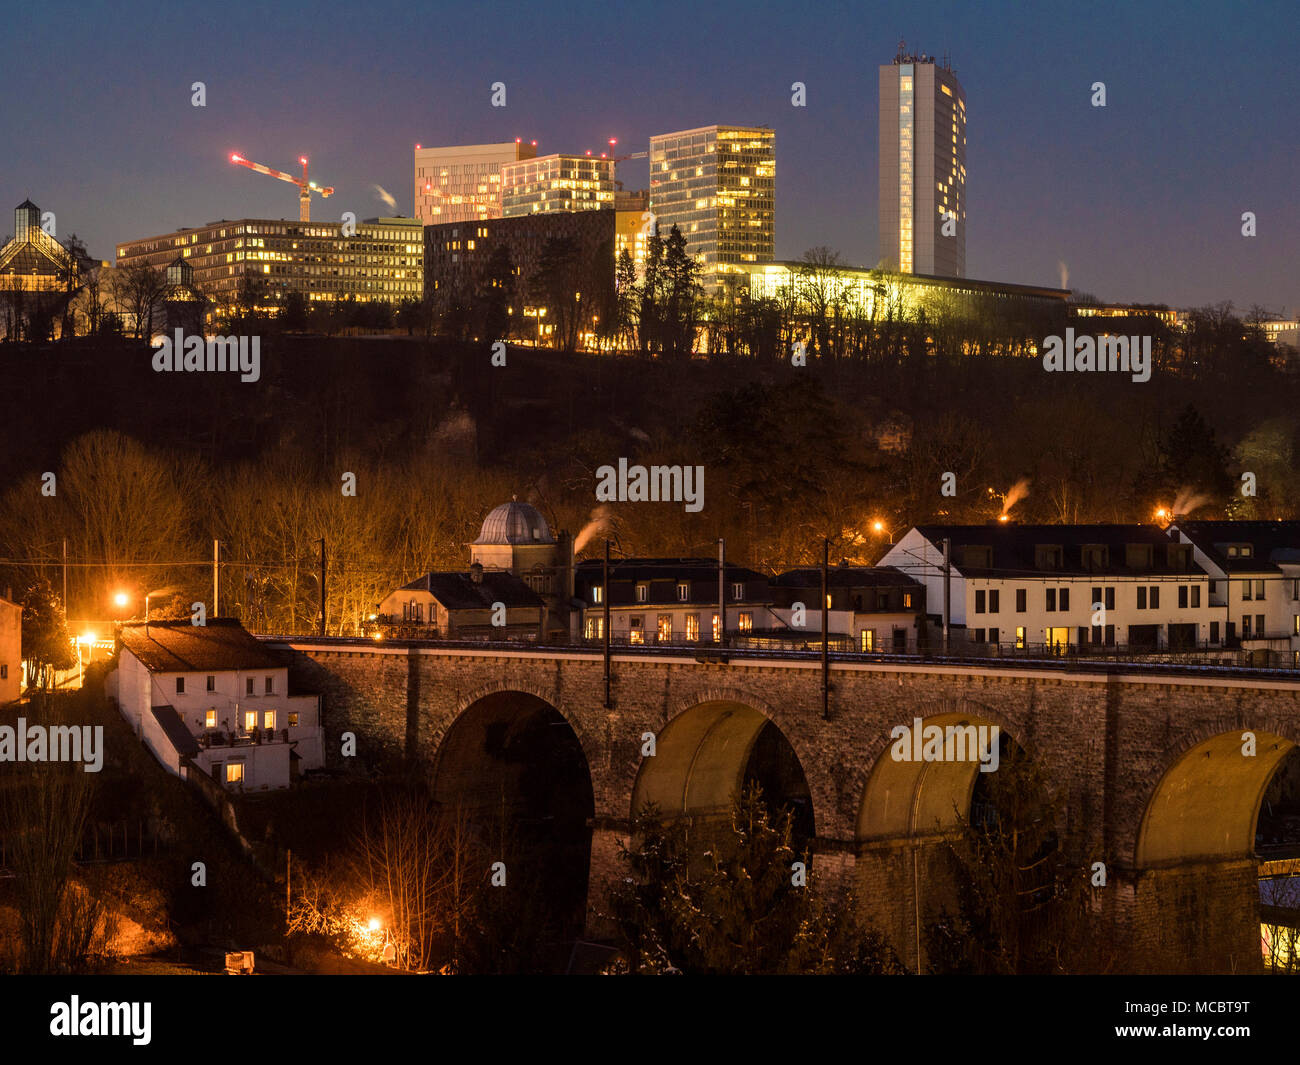 Viaduct in Clausen, Eurpean center, Luxembourg City, Europe - Stock Image